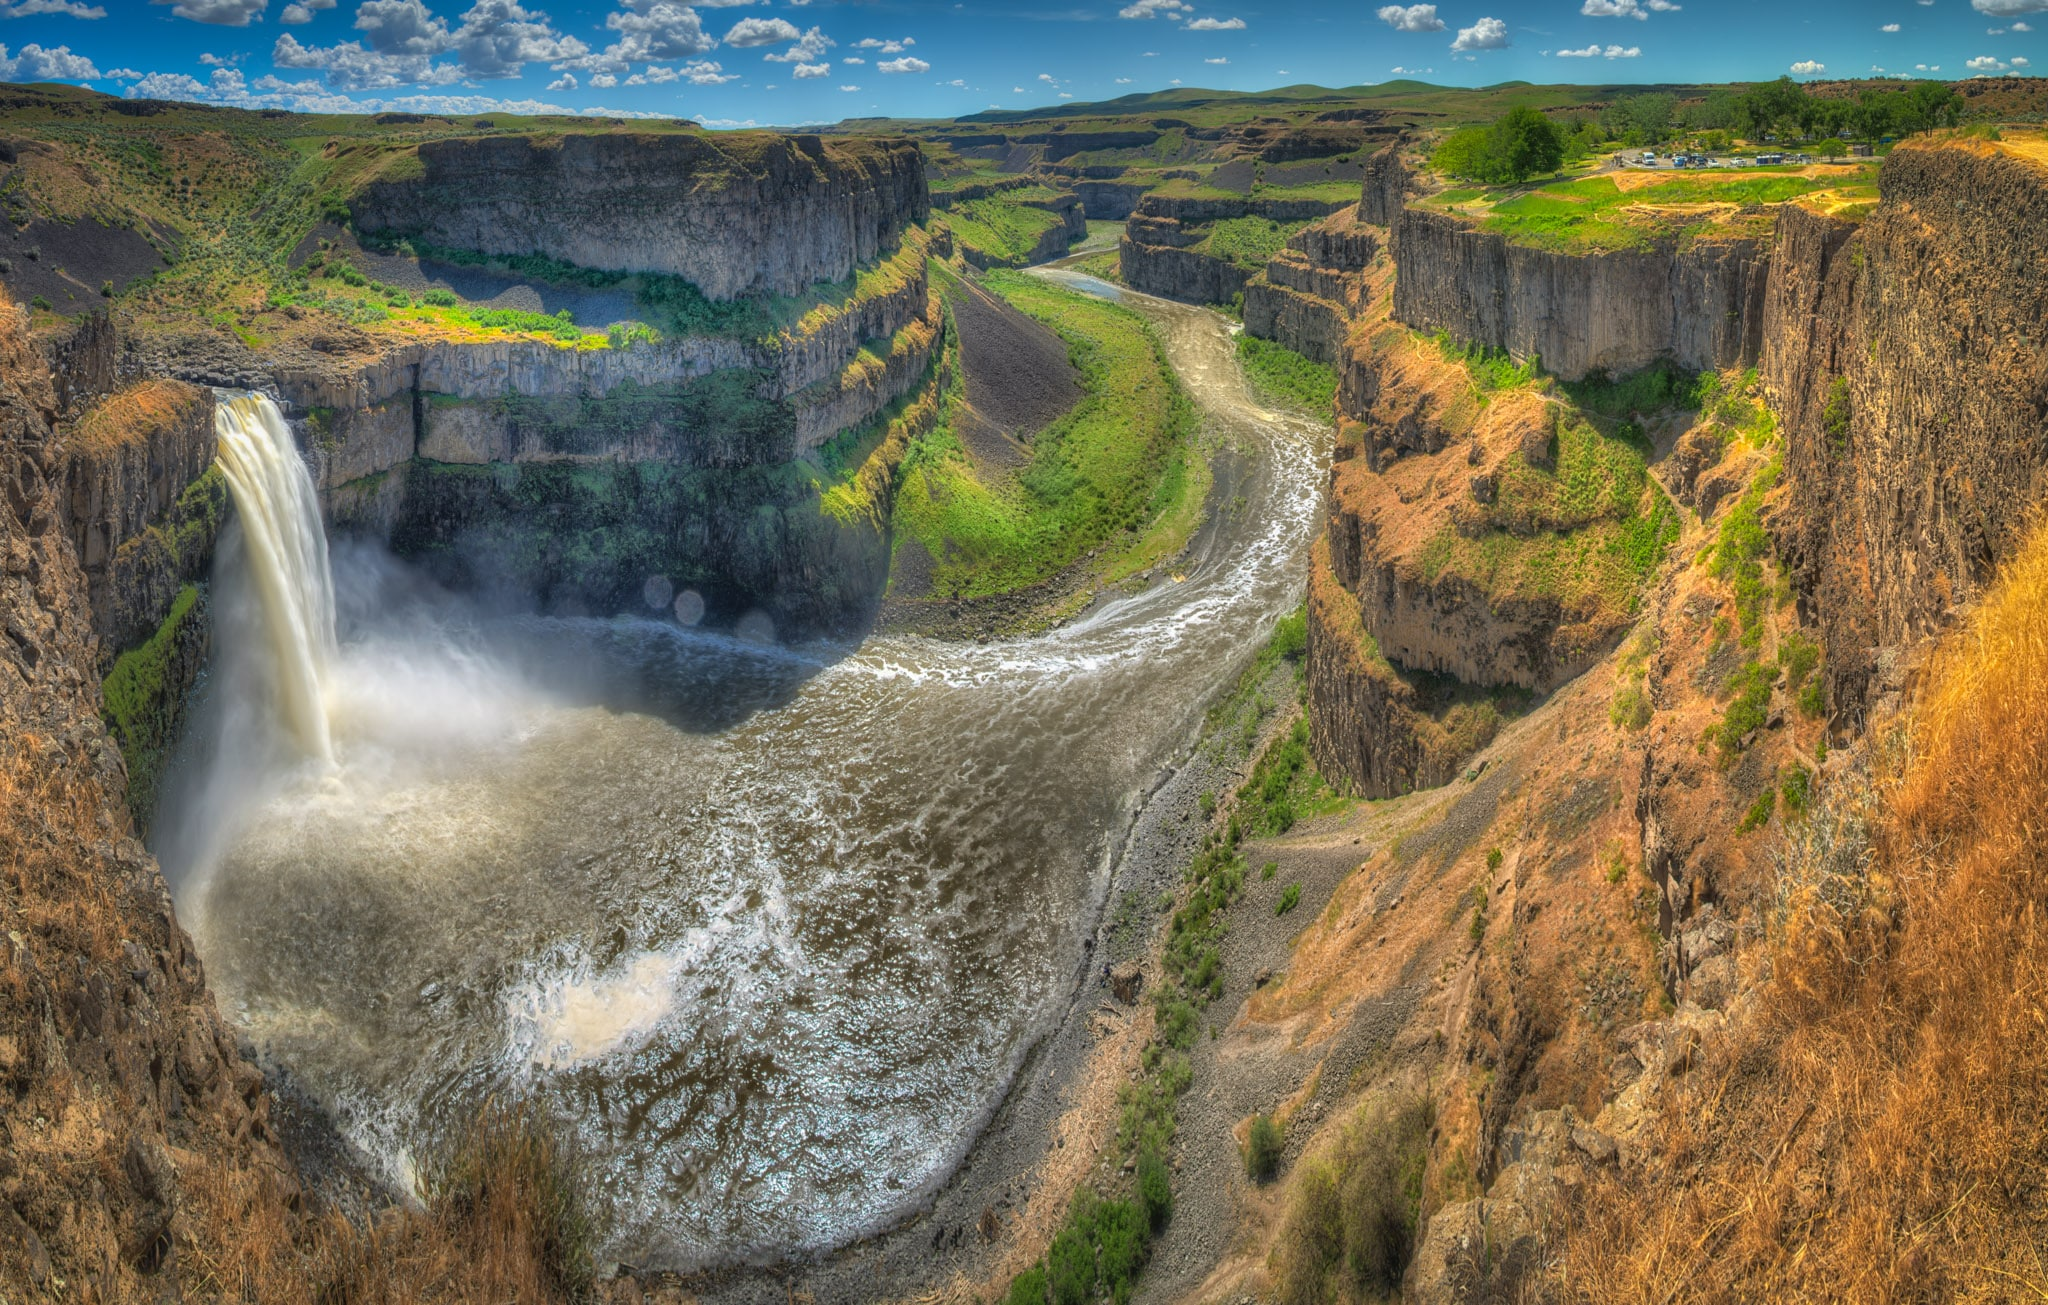 This panorama shows not only Palouse Falls, but also the columnar balsalt canyon of the Palouses River as it head south to join the Snake River, near Perry, Washington.